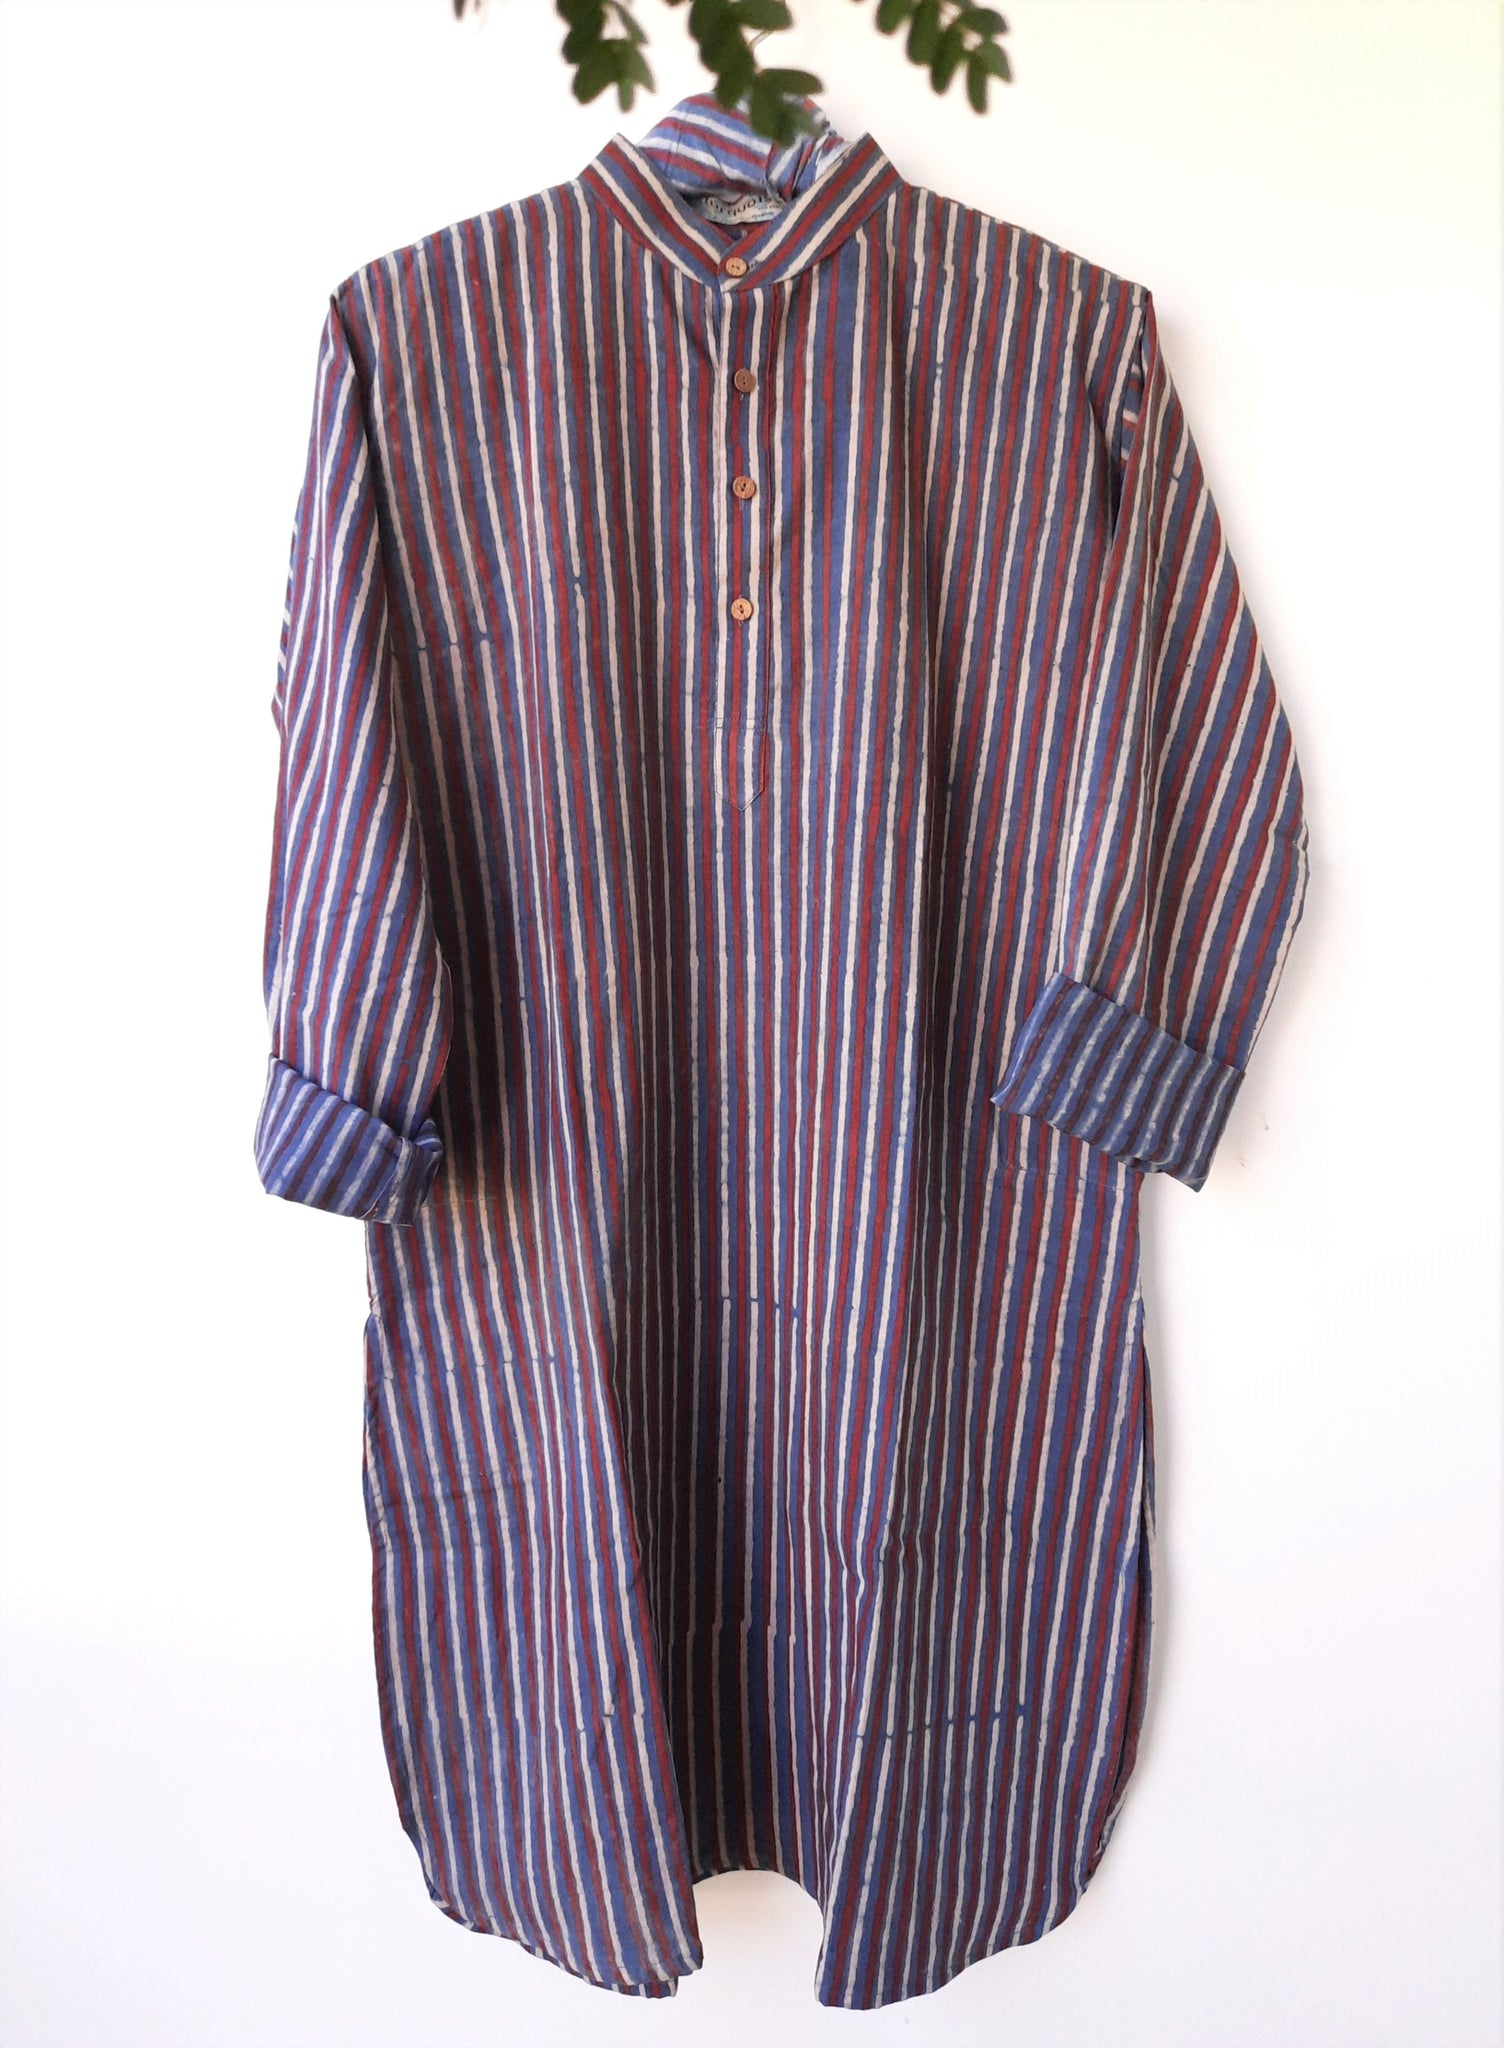 Indigo striped men's kurta